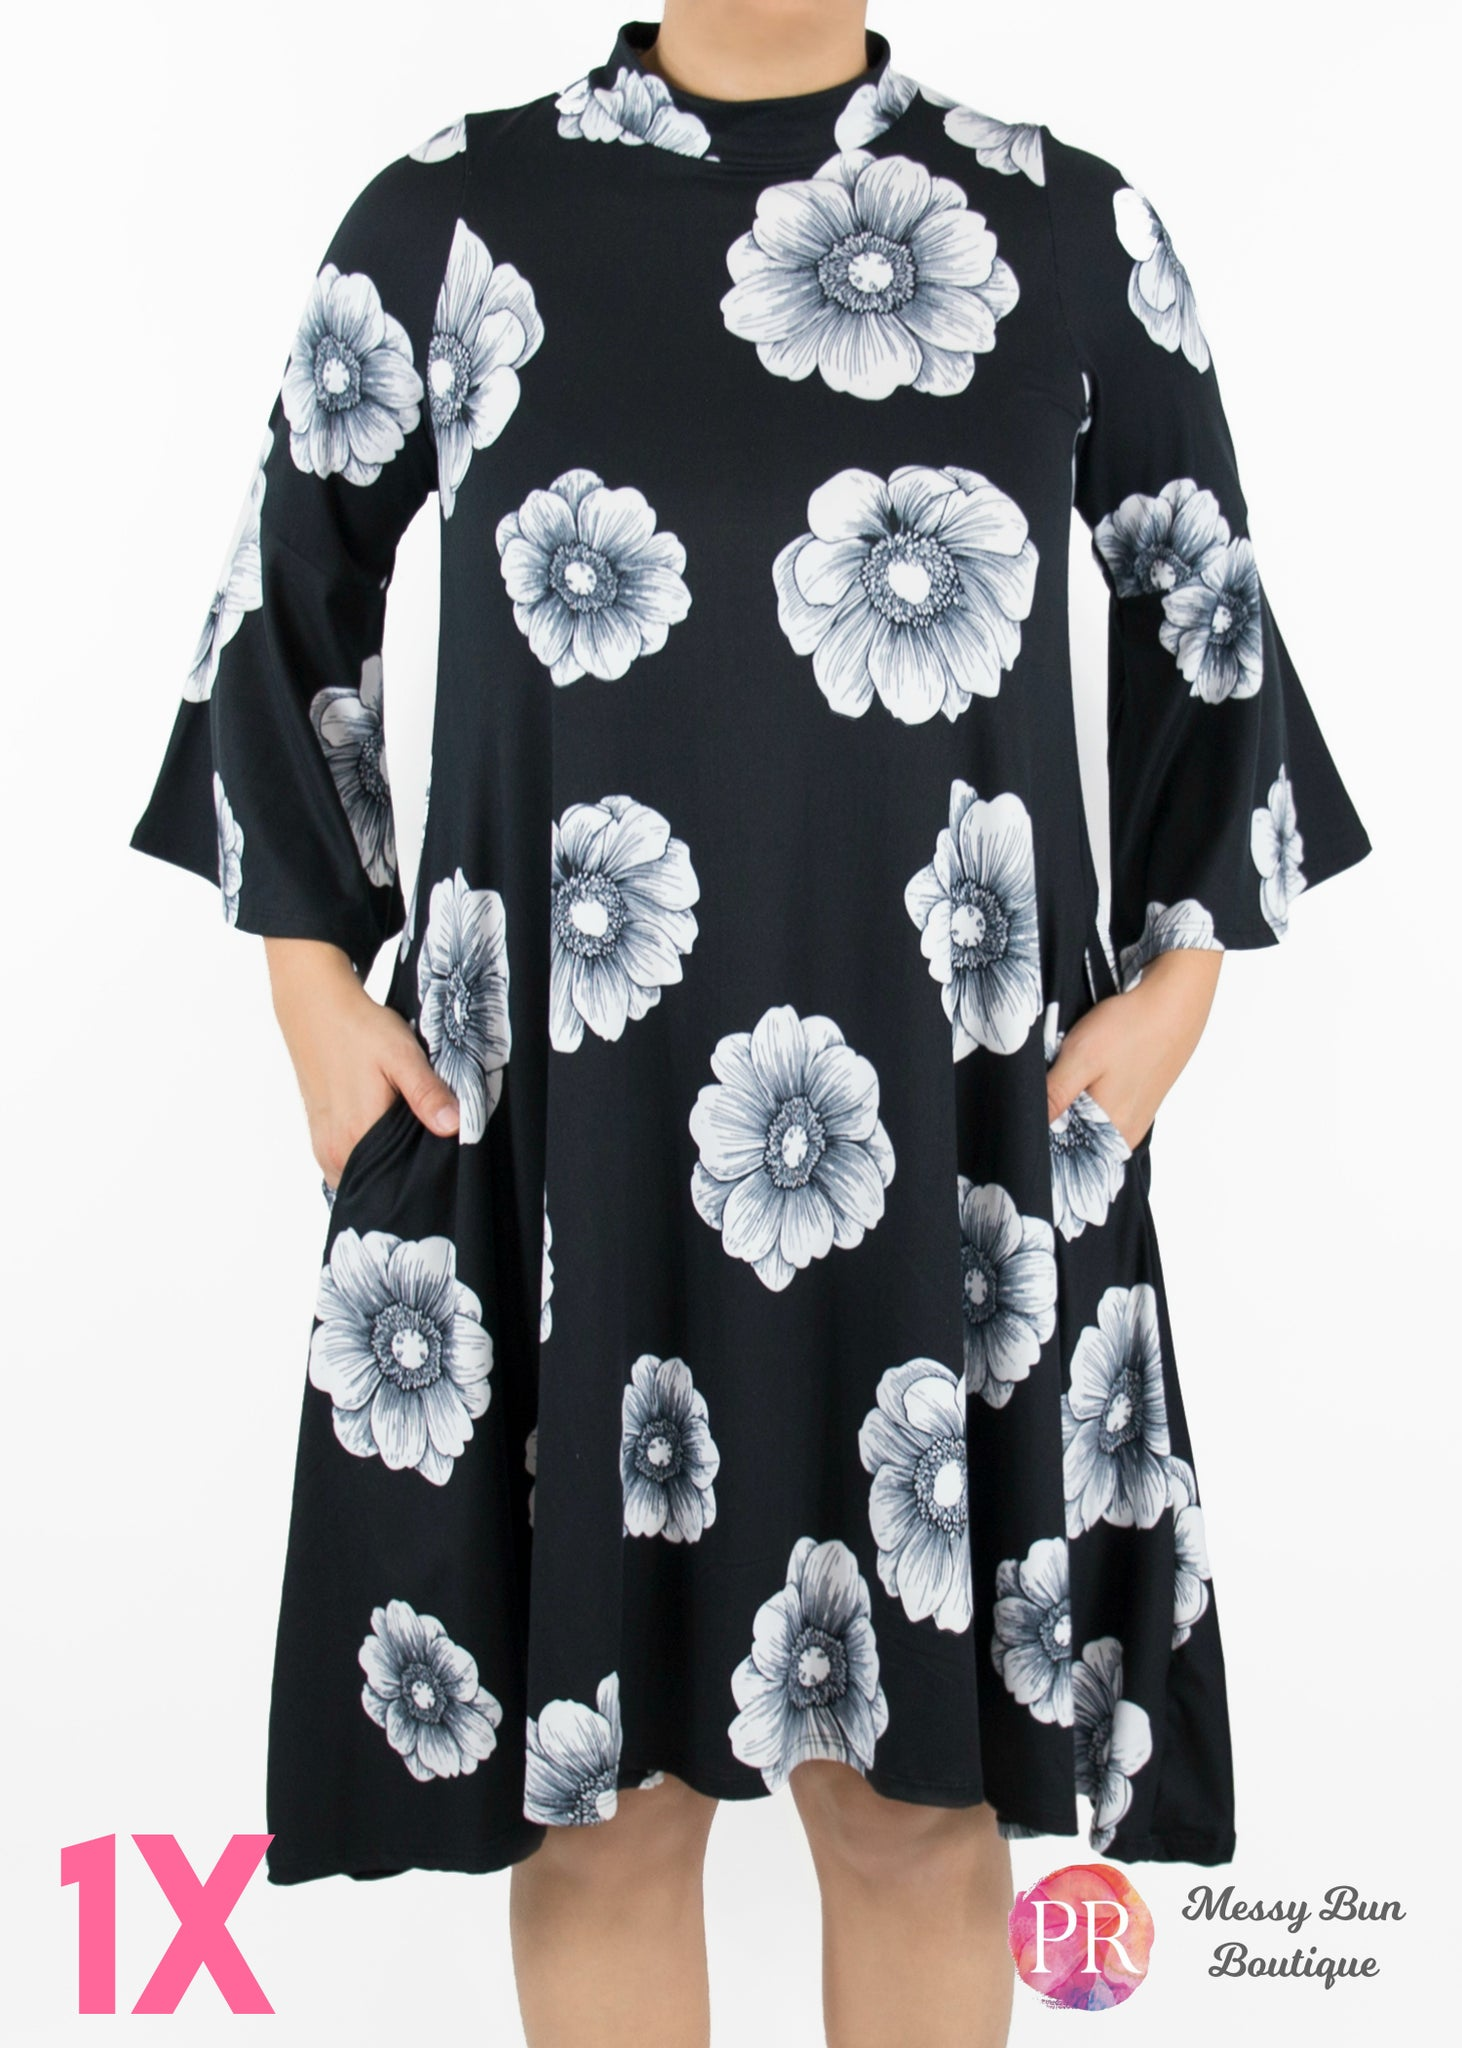 1X Black and Blue Floral Paisley Raye Lotus Dress